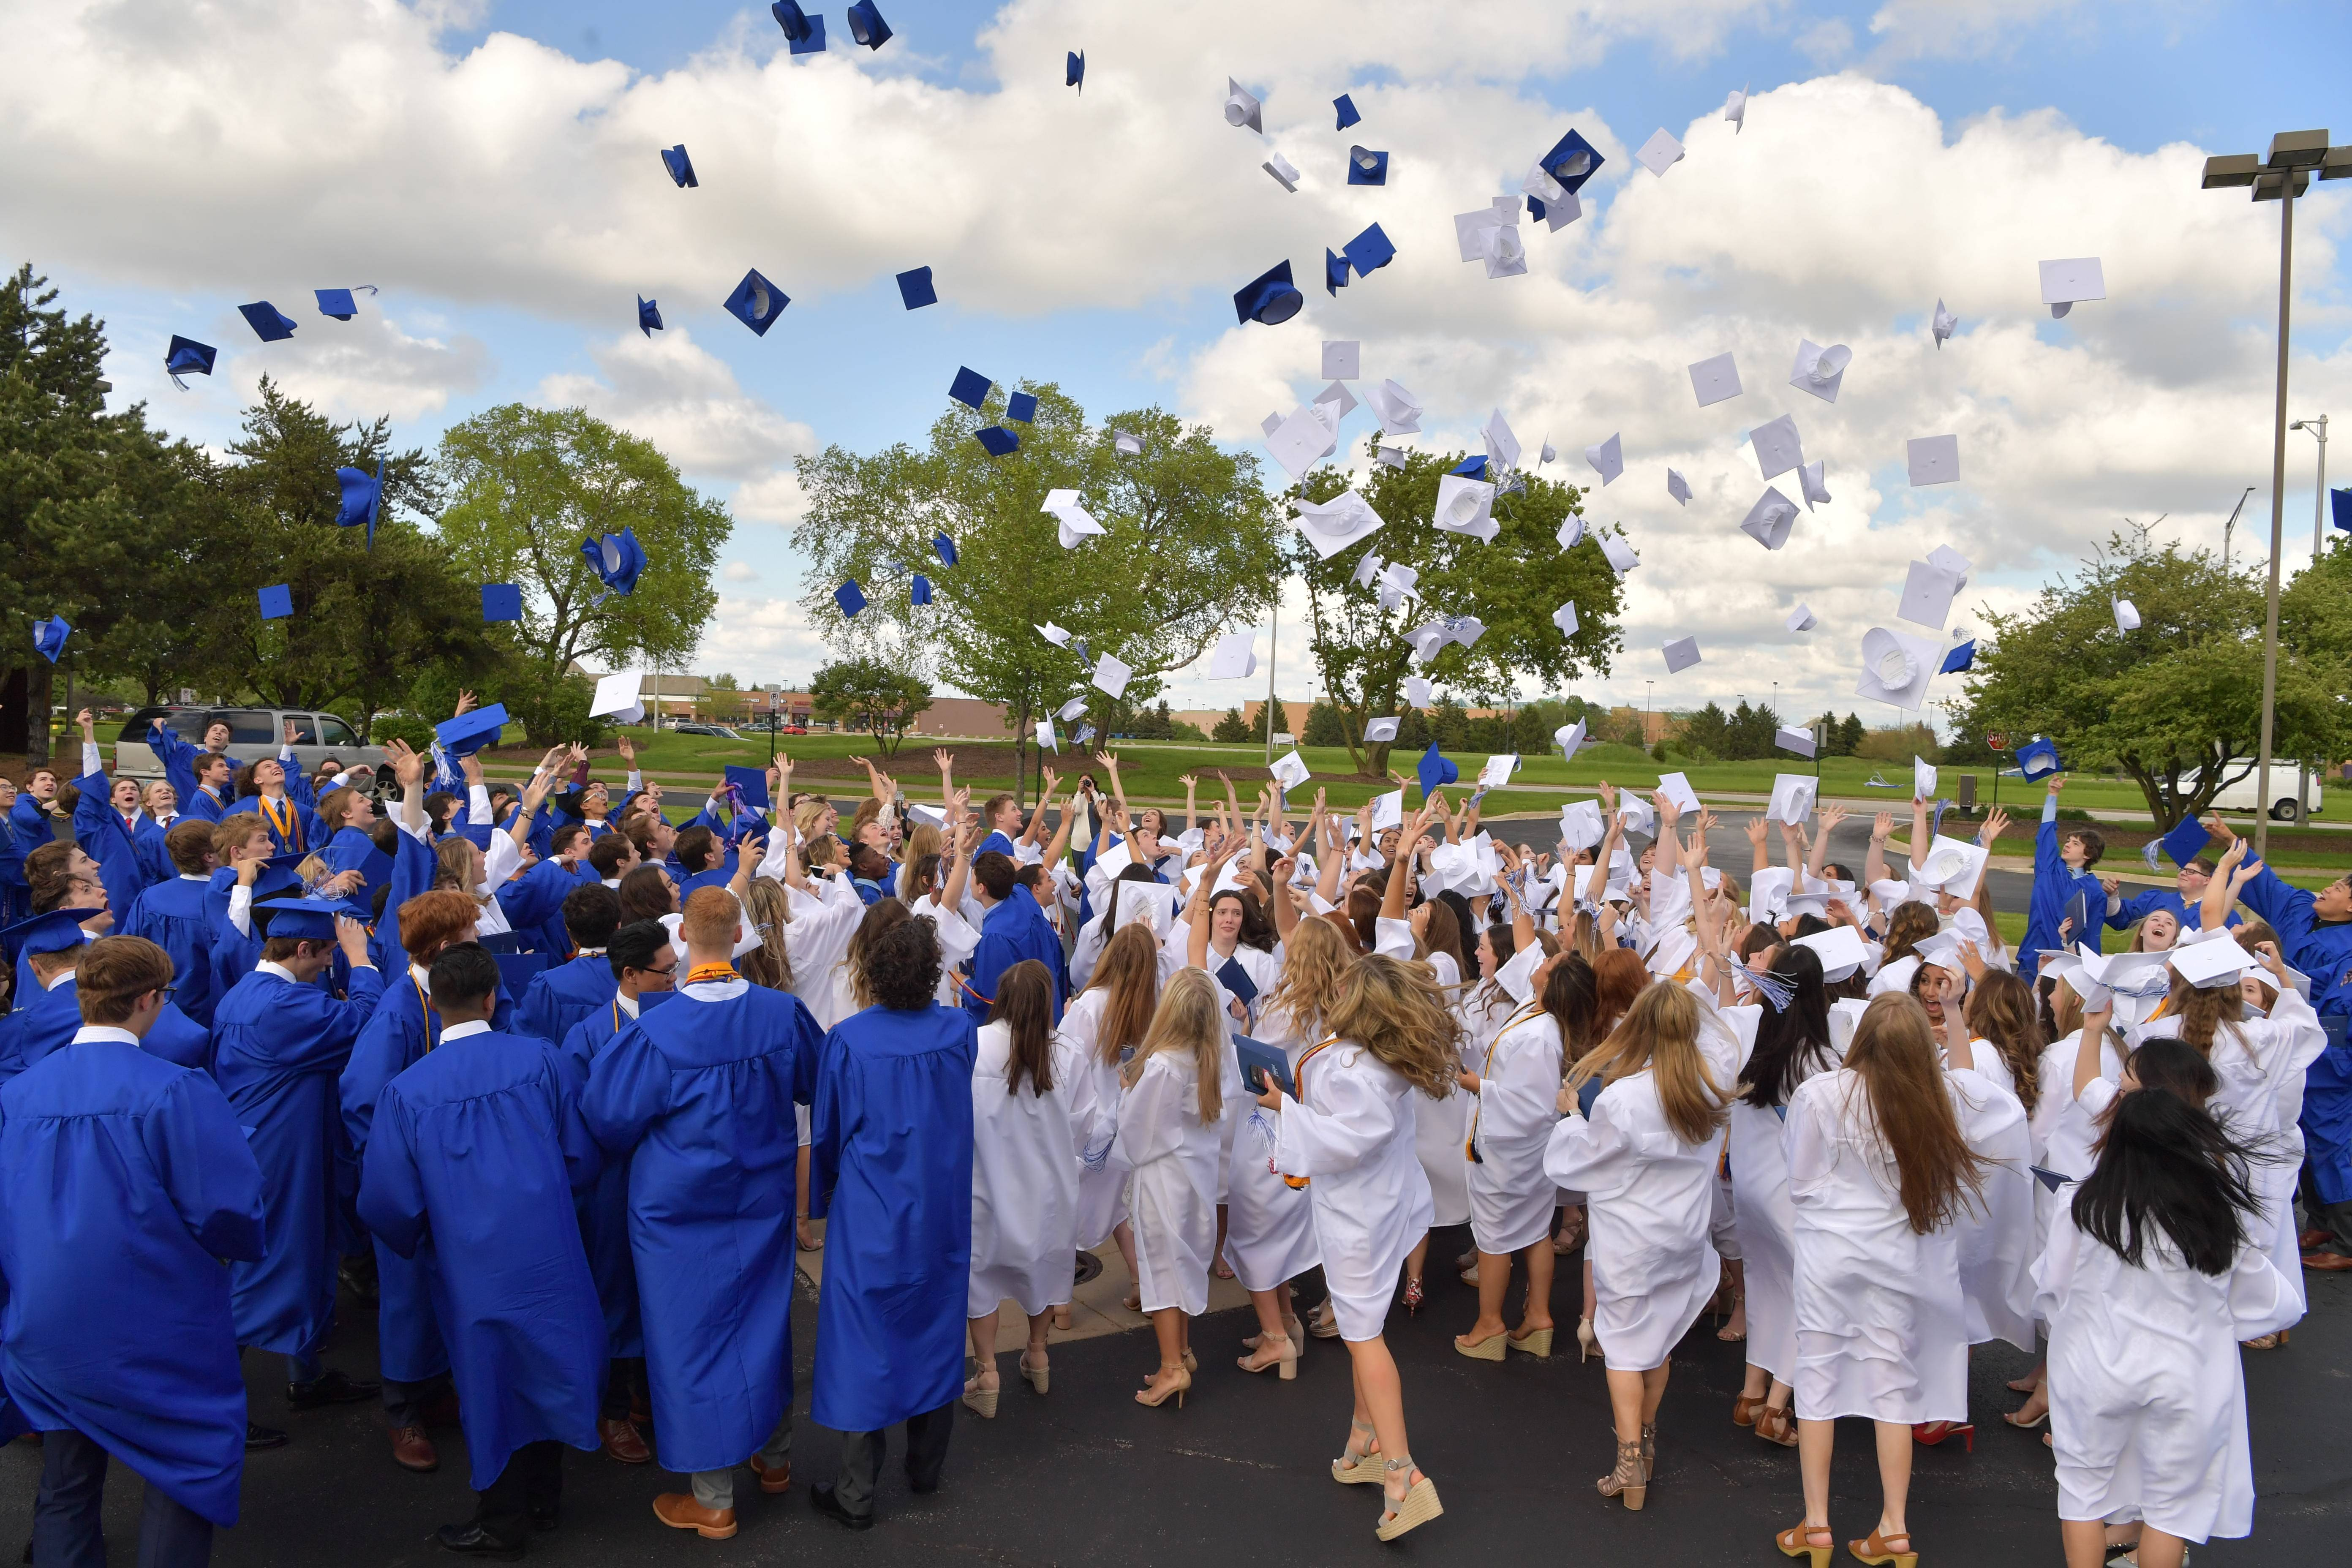 St. Francis celebrates their graduation on Sunday, May 19 in St. Charles.